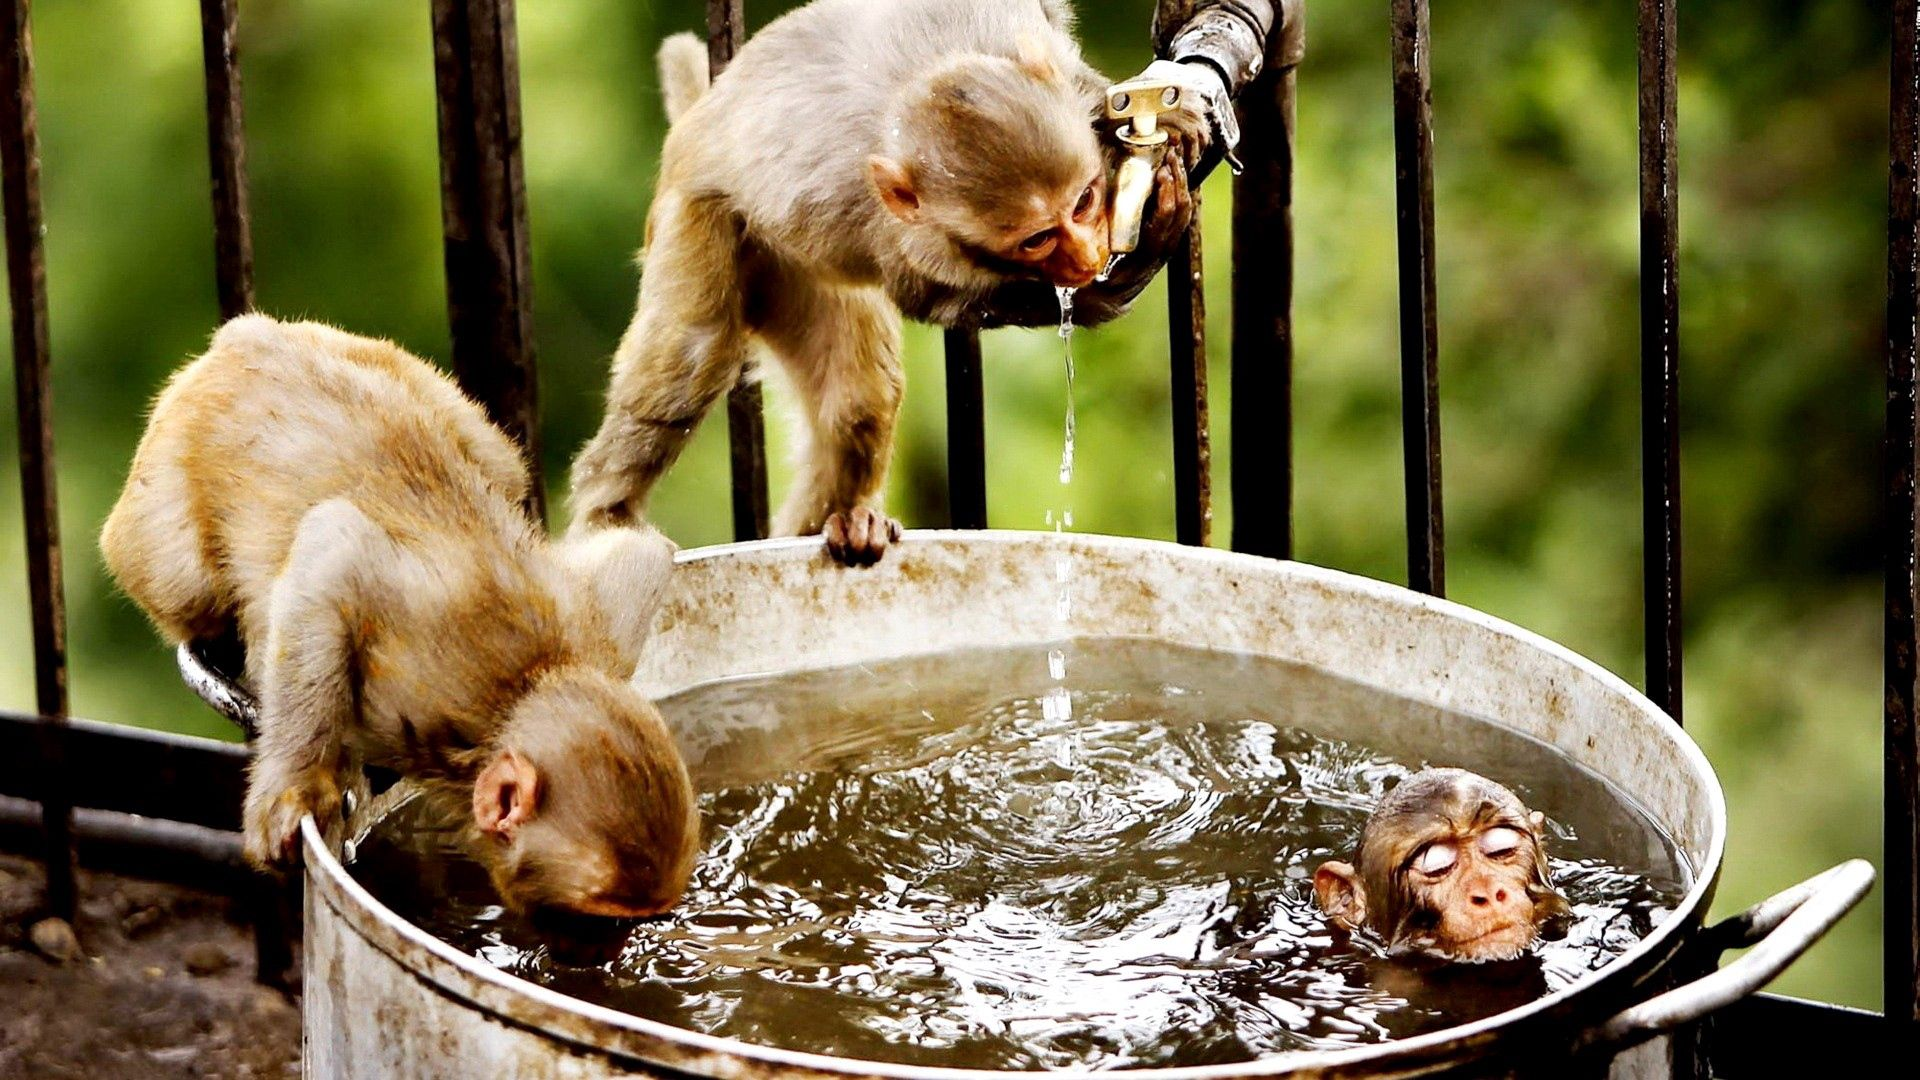 67271 Screensavers and Wallpapers Monkeys for phone. Download Animals, Water, Monkeys, Drink, Thirst, Bathe pictures for free